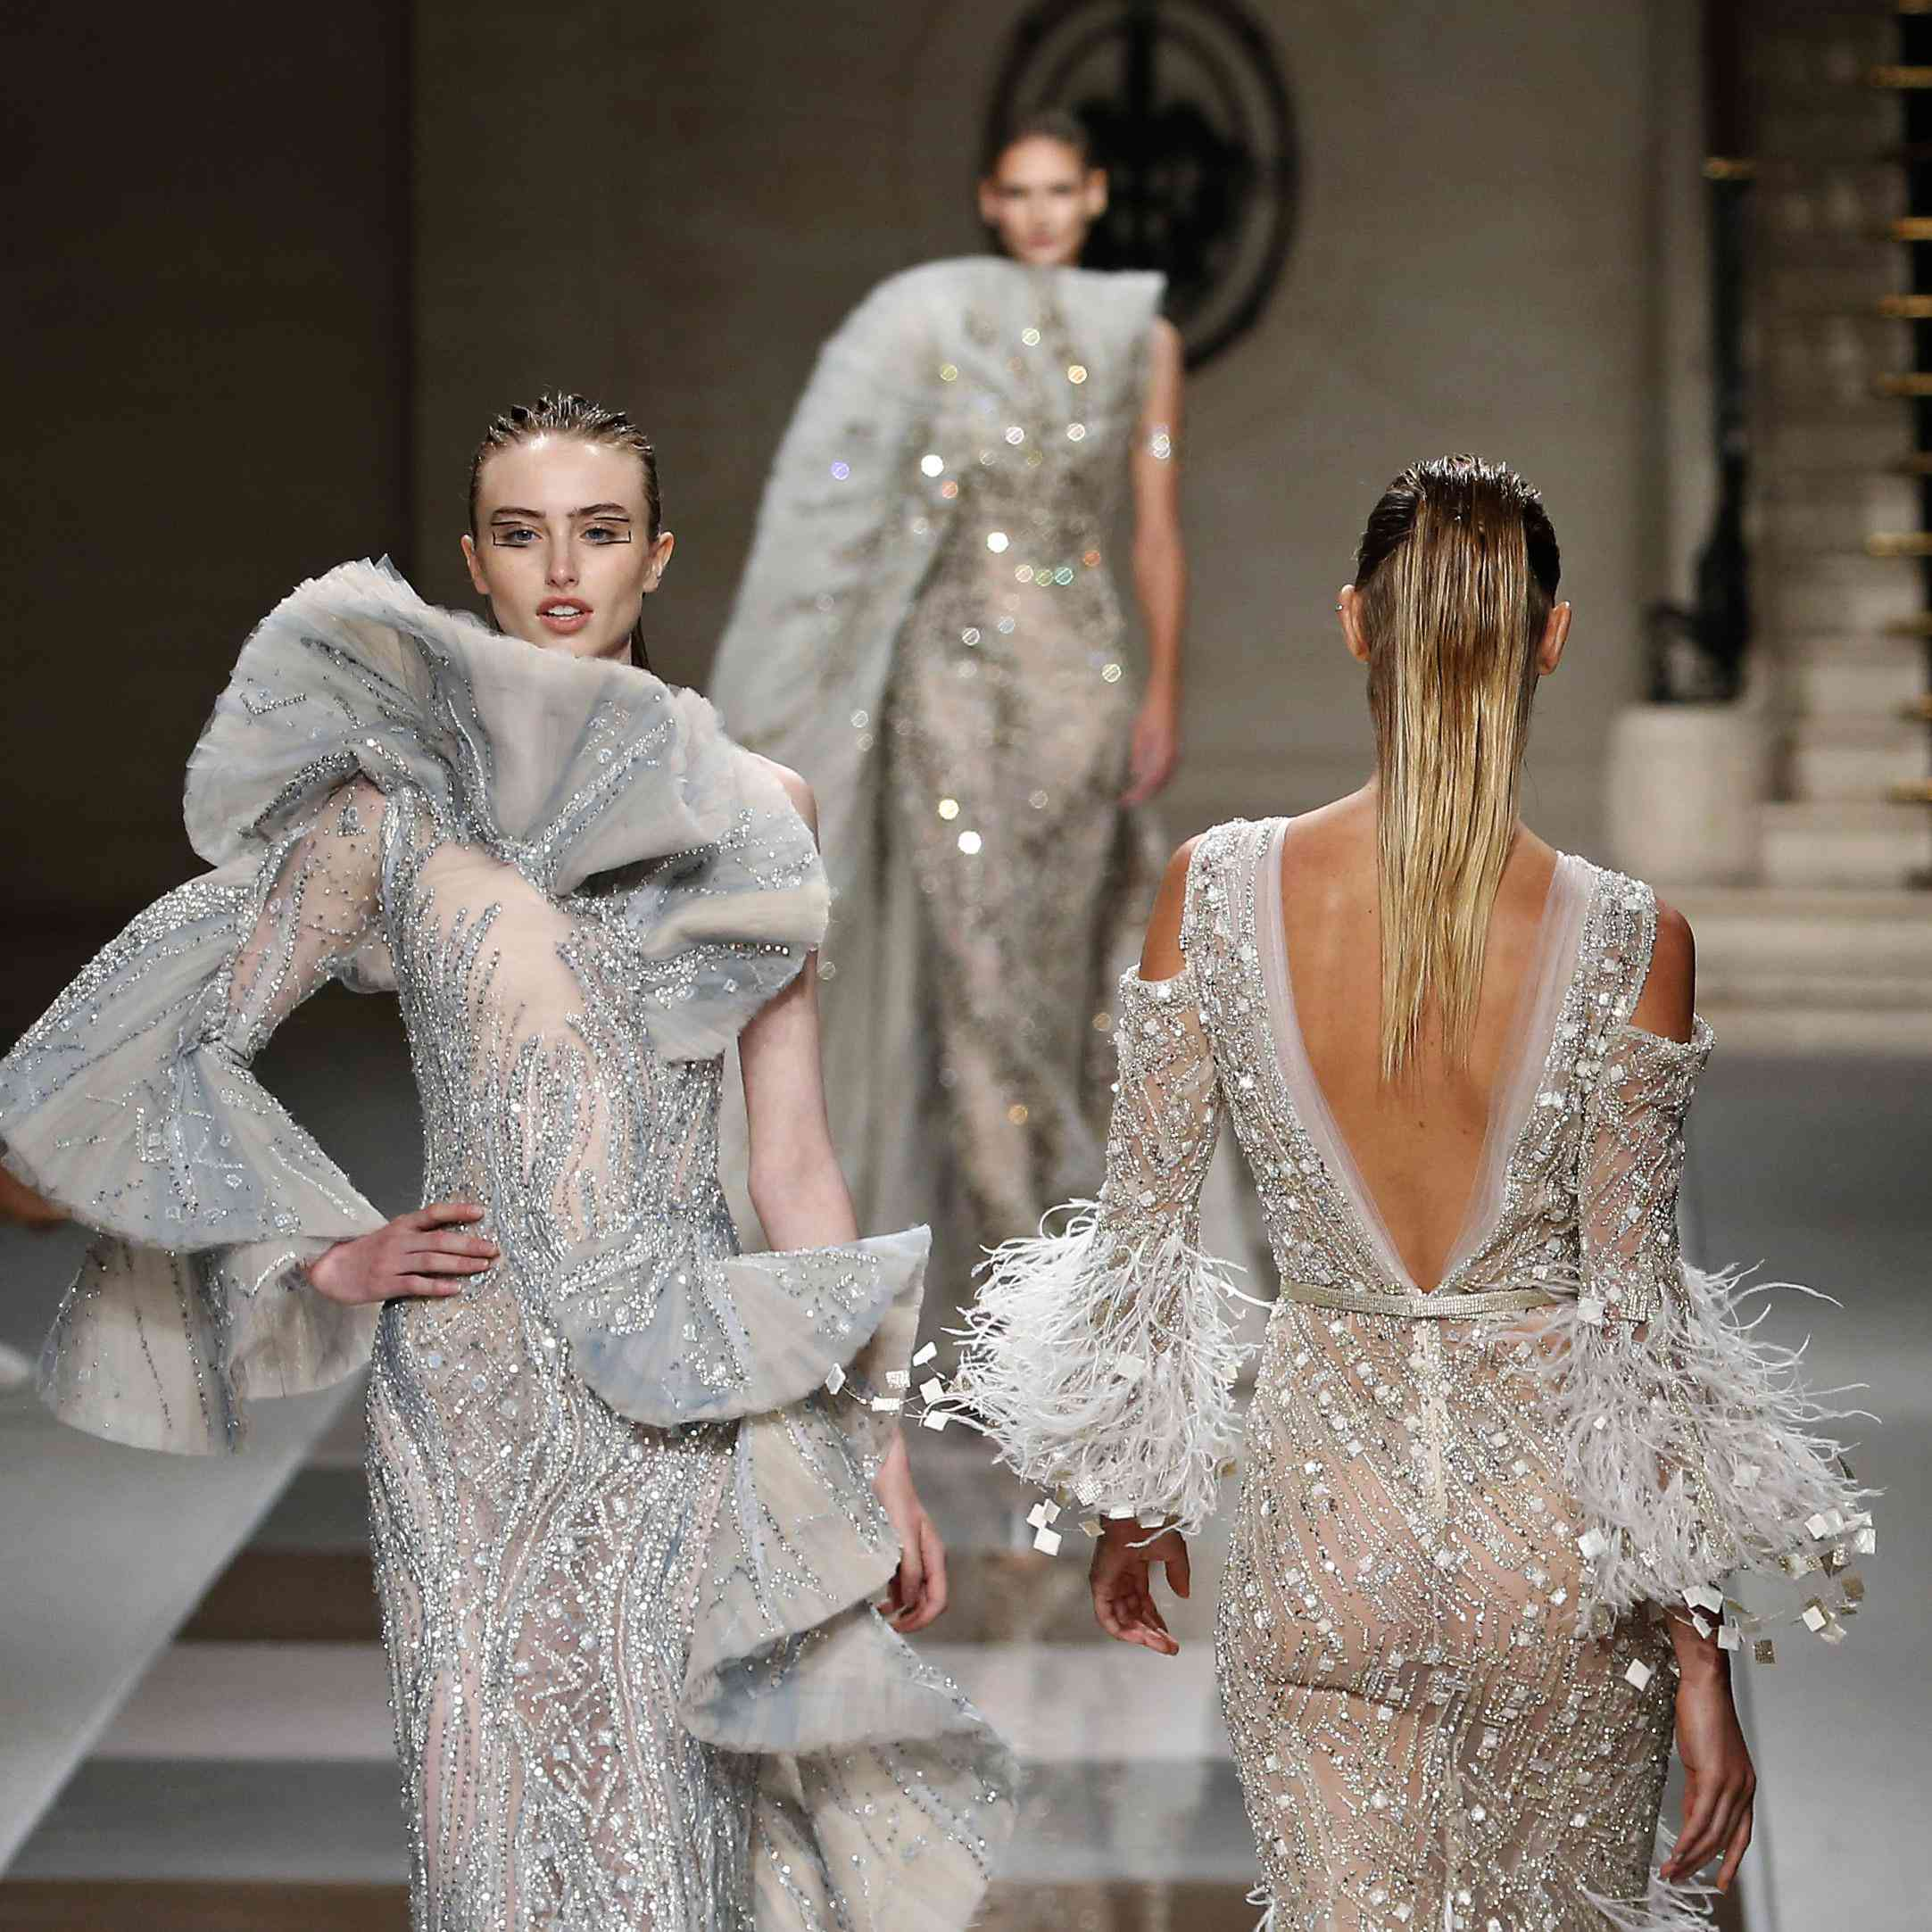 39 wedding dresses from couture fashion week every bride-to